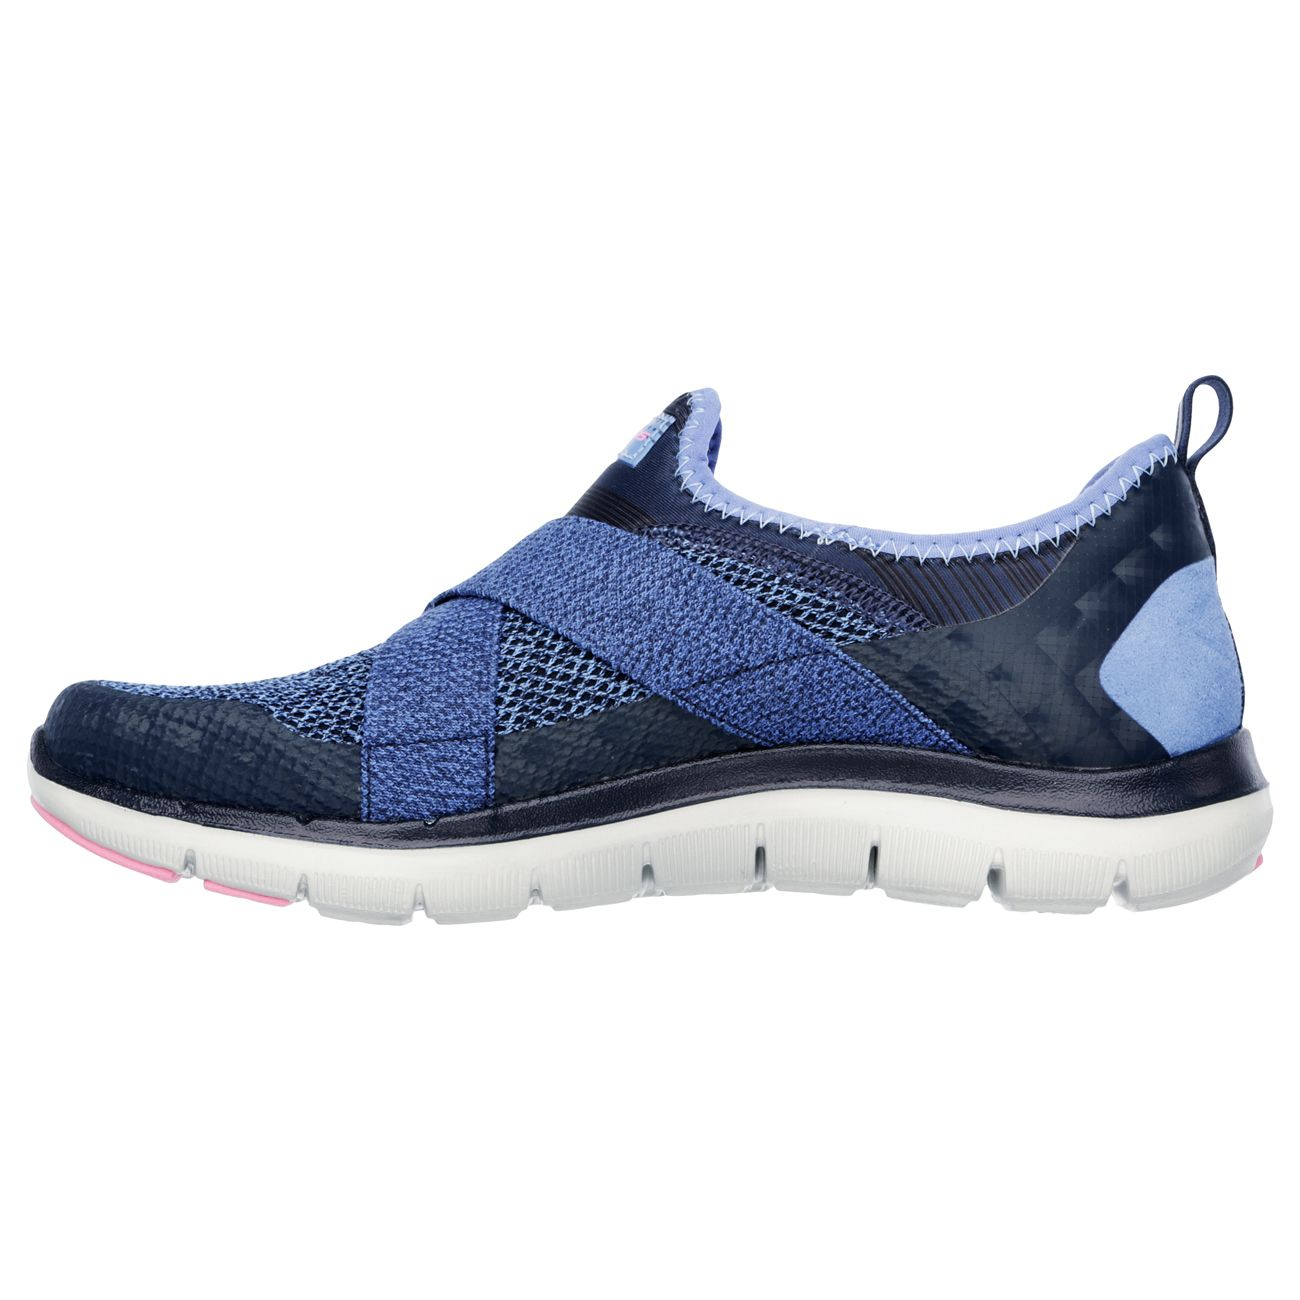 Skechers Walking Shoes For Ladies